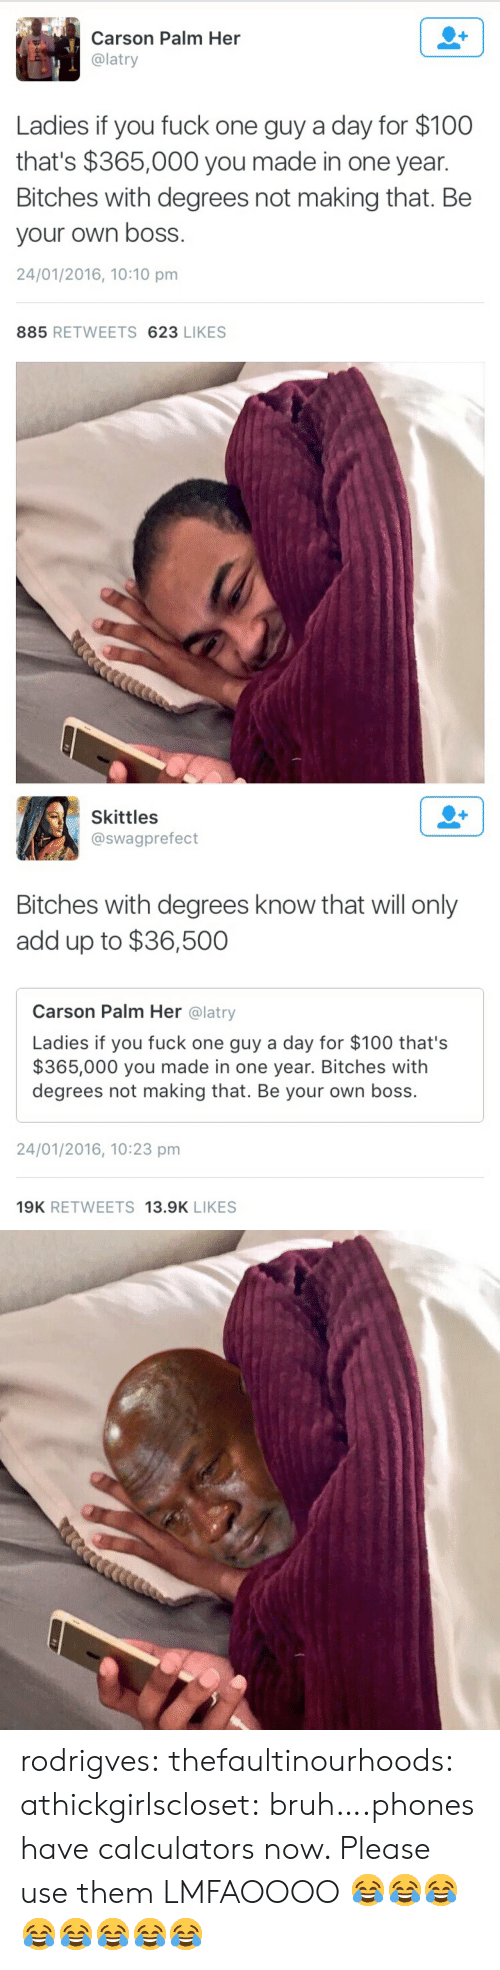 Anaconda, Bruh, and Target: Carson Palm Her  @latry  Ladies if you fuck one guy a day for $100  that's $365,000 you made in one year.  Bitches with degrees not making that. Be  your own boss  24/01/2016, 10:10 pm  885 RETWEETS 623 LIKES   Skittles  @swagprefect  Bitches with degrees know that will only  add up to $36,500  Carson Palm Her @latry  Ladies if you fuck one guy a day for $100 that's  $365,000 you made in one year. Bitches with  degrees not making that. Be your own boss.  24/01/2016, 10:23 pm  19K RETWEETS 13.9K LIKES rodrigves:  thefaultinourhoods:  athickgirlscloset:  bruh….phones have calculators now. Please use them  LMFAOOOO  😂😂😂😂😂😂😂😂